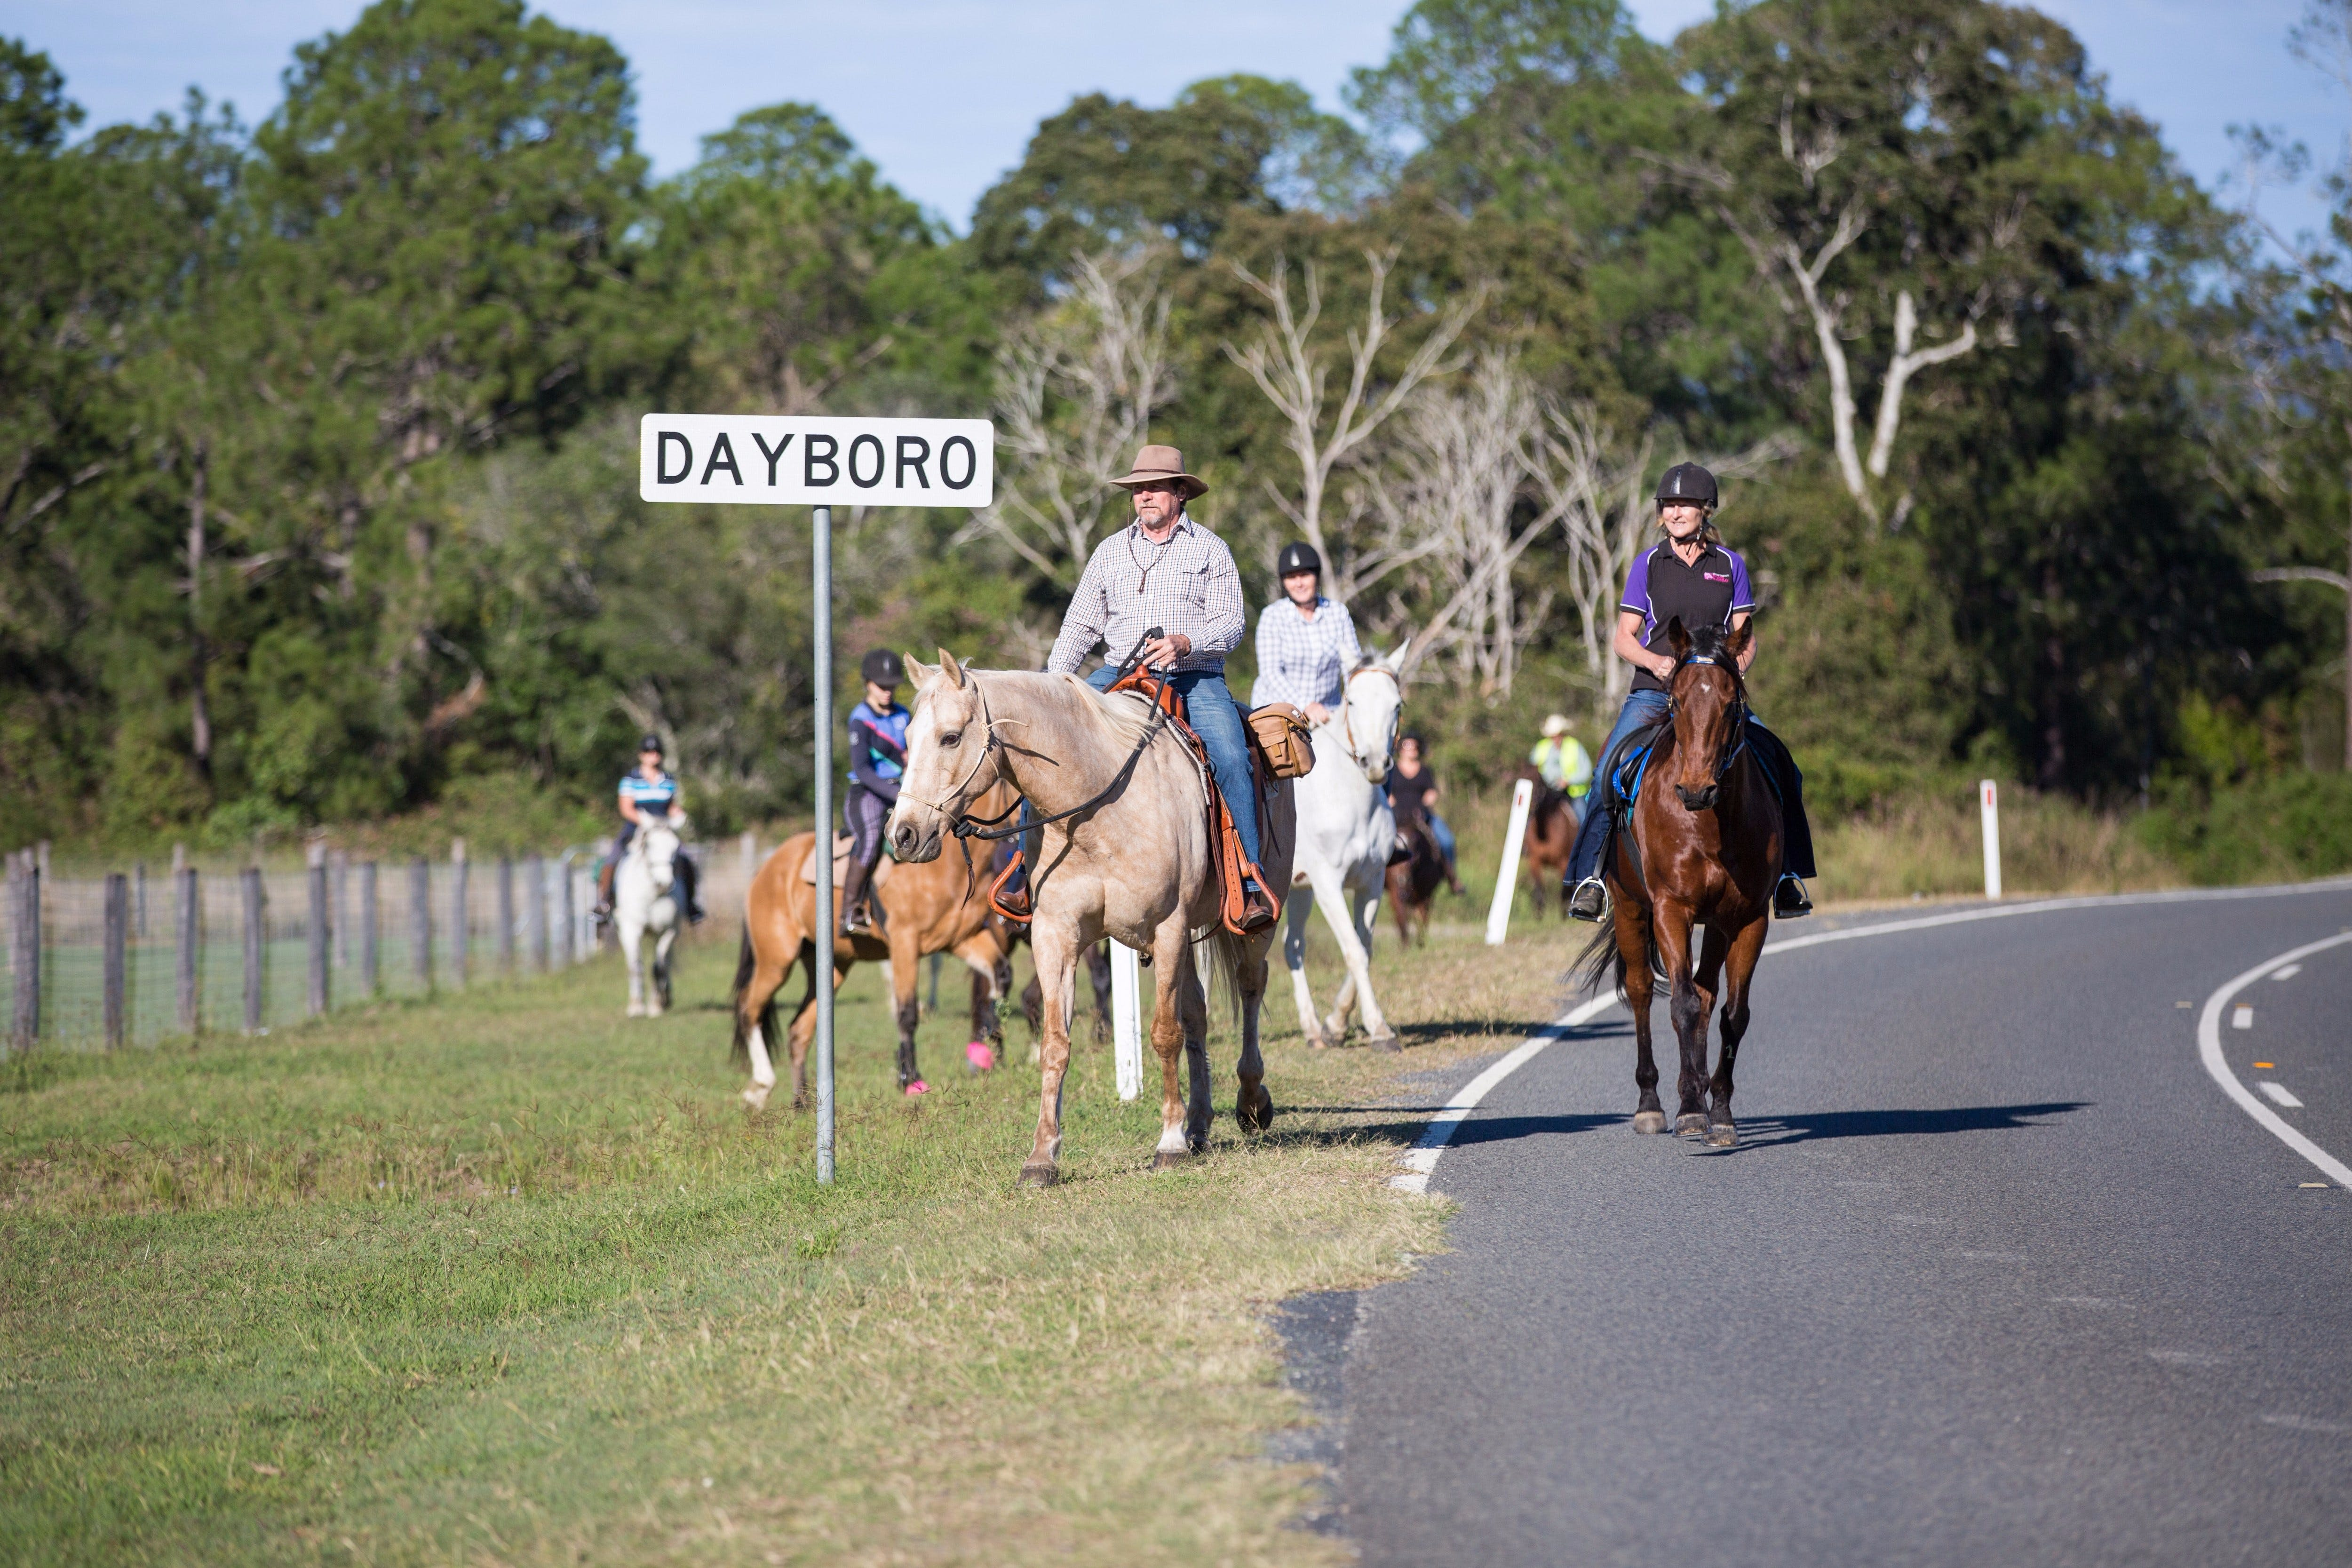 Dayboro - VIC Tourism